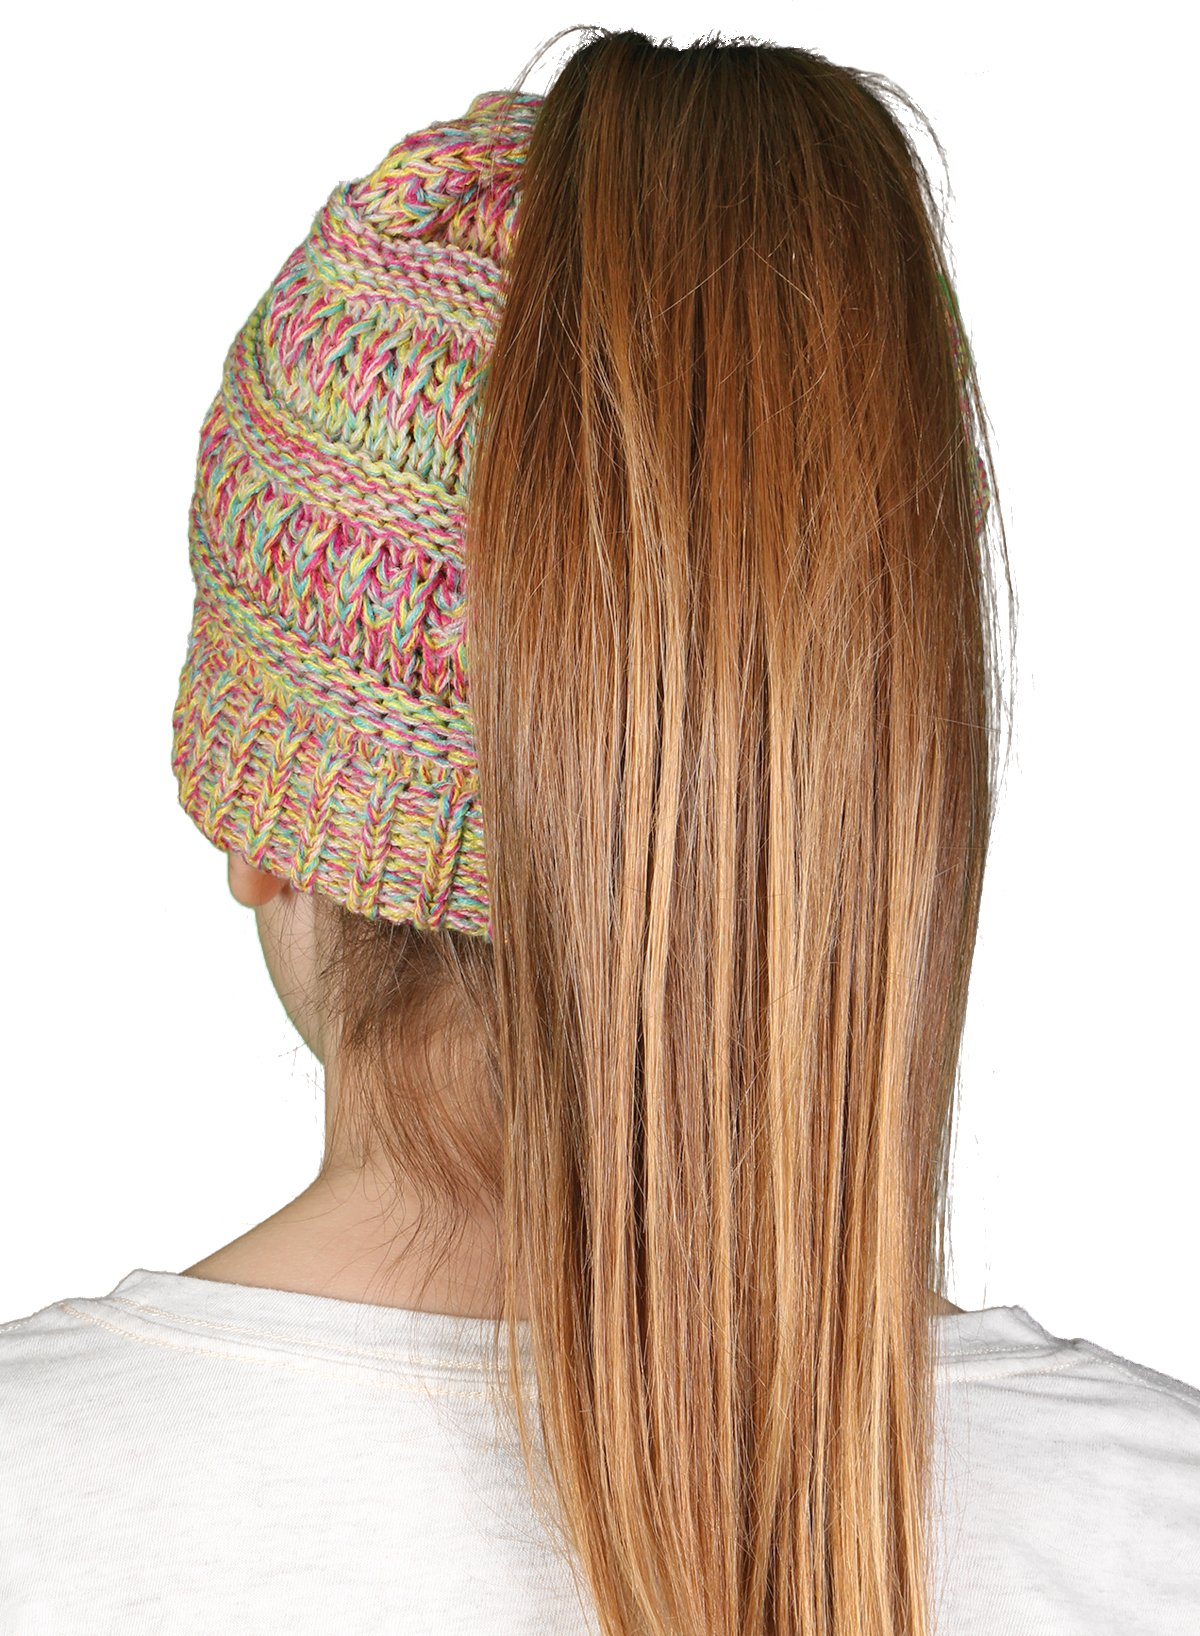 c48a0661c2c   Ponytail Messy Bun BeanieTail Soft Winter Knit Stretchy Beanie Hat Cap   9.99. Click ...